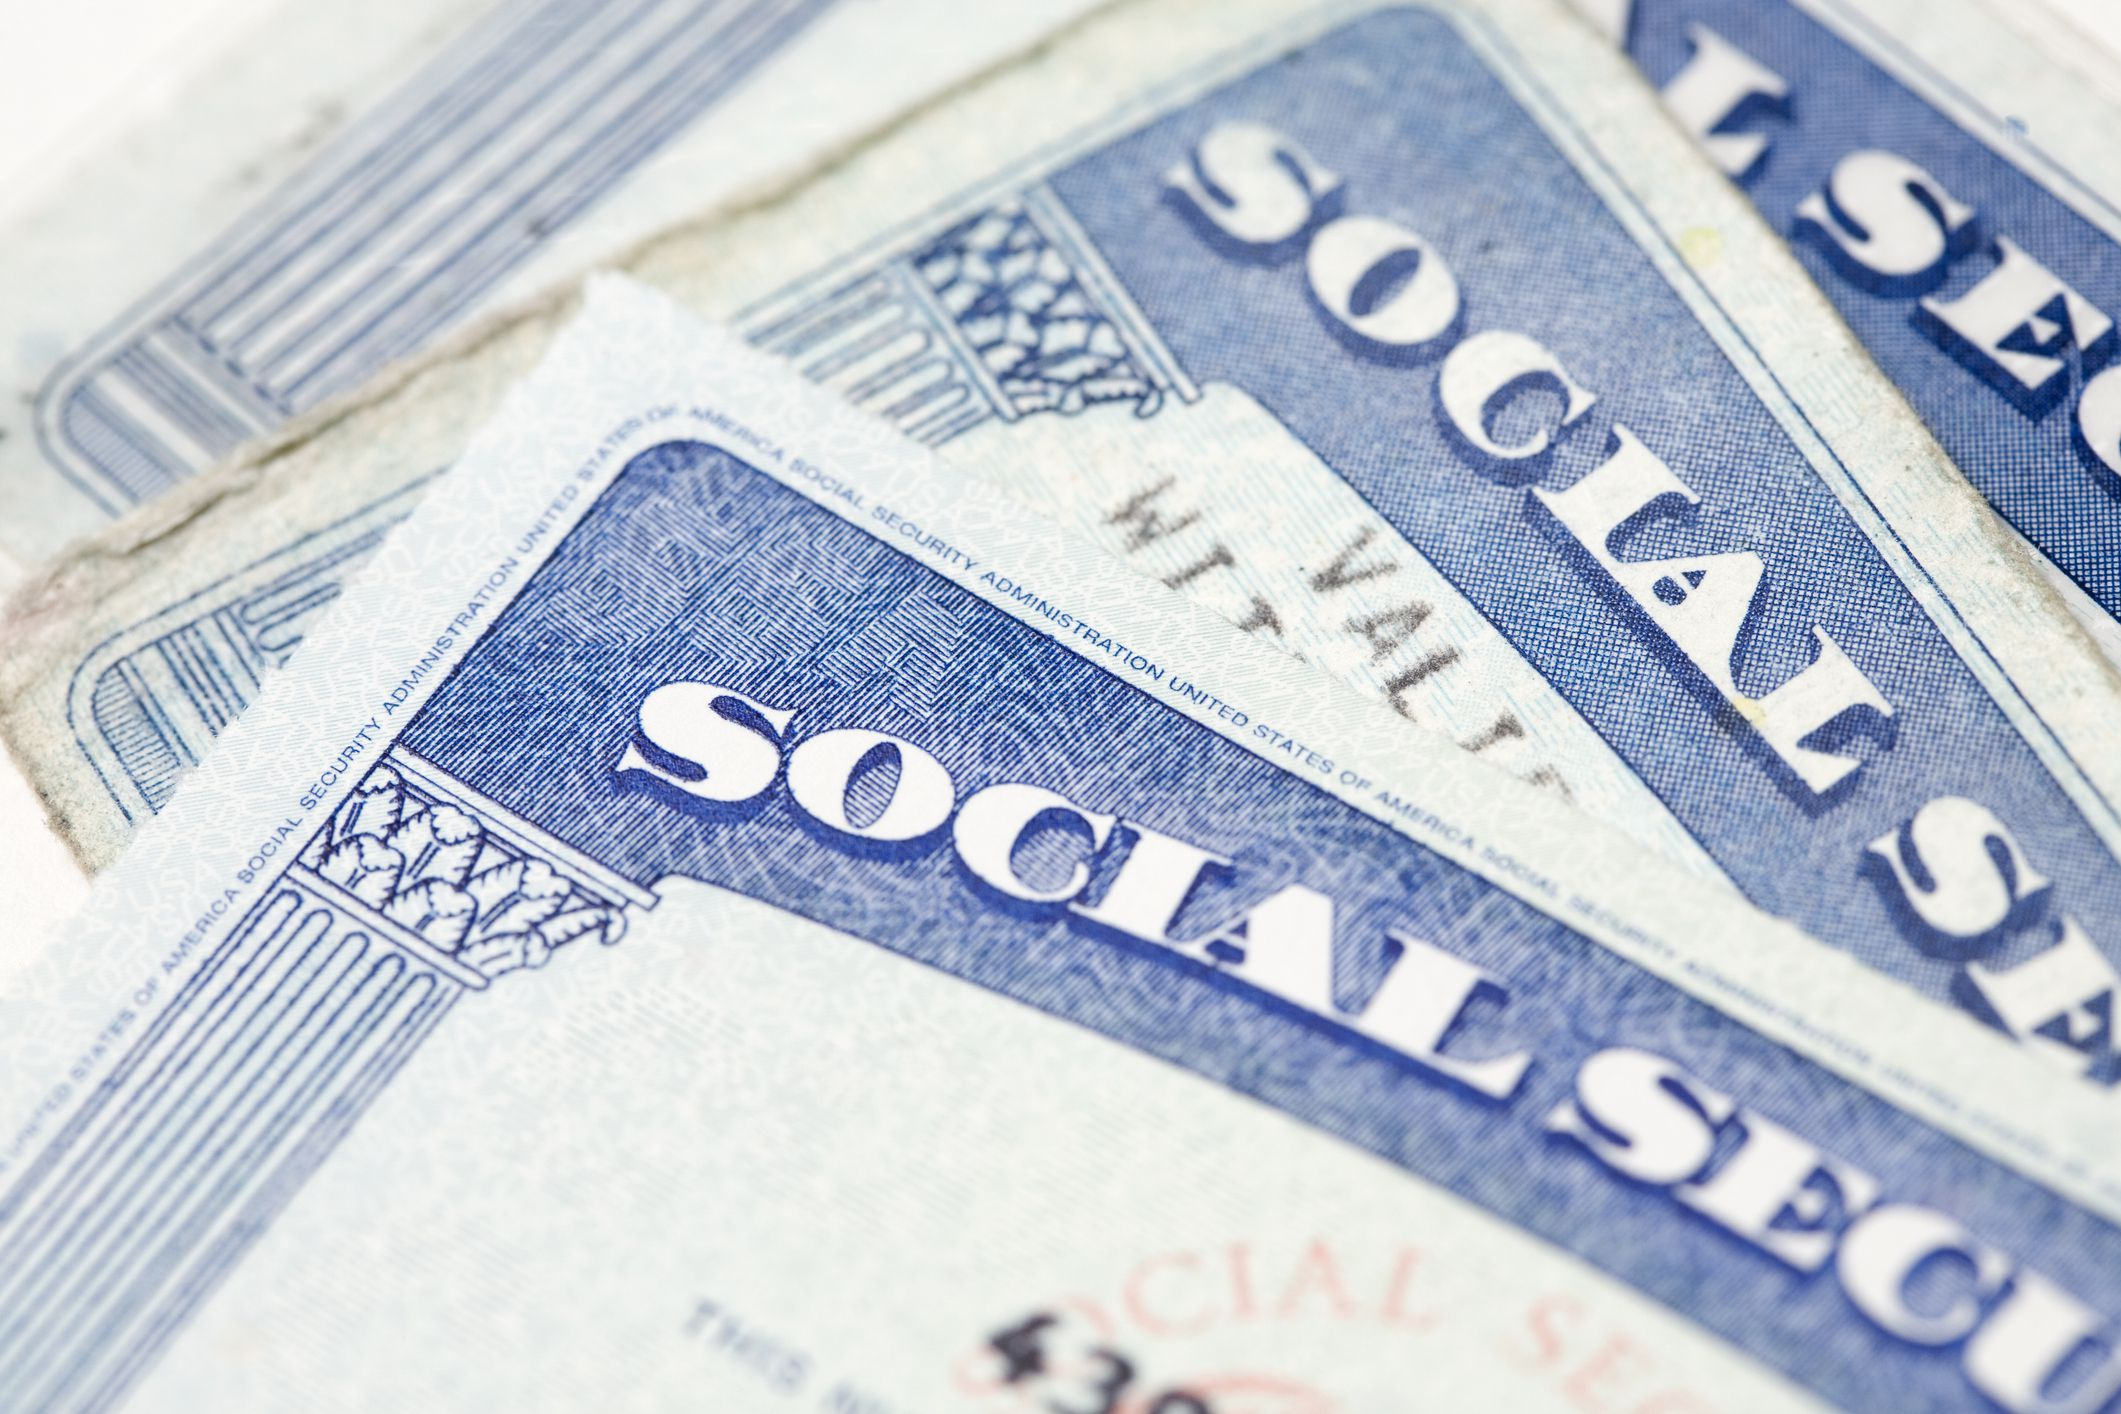 It's Time To End Social Security